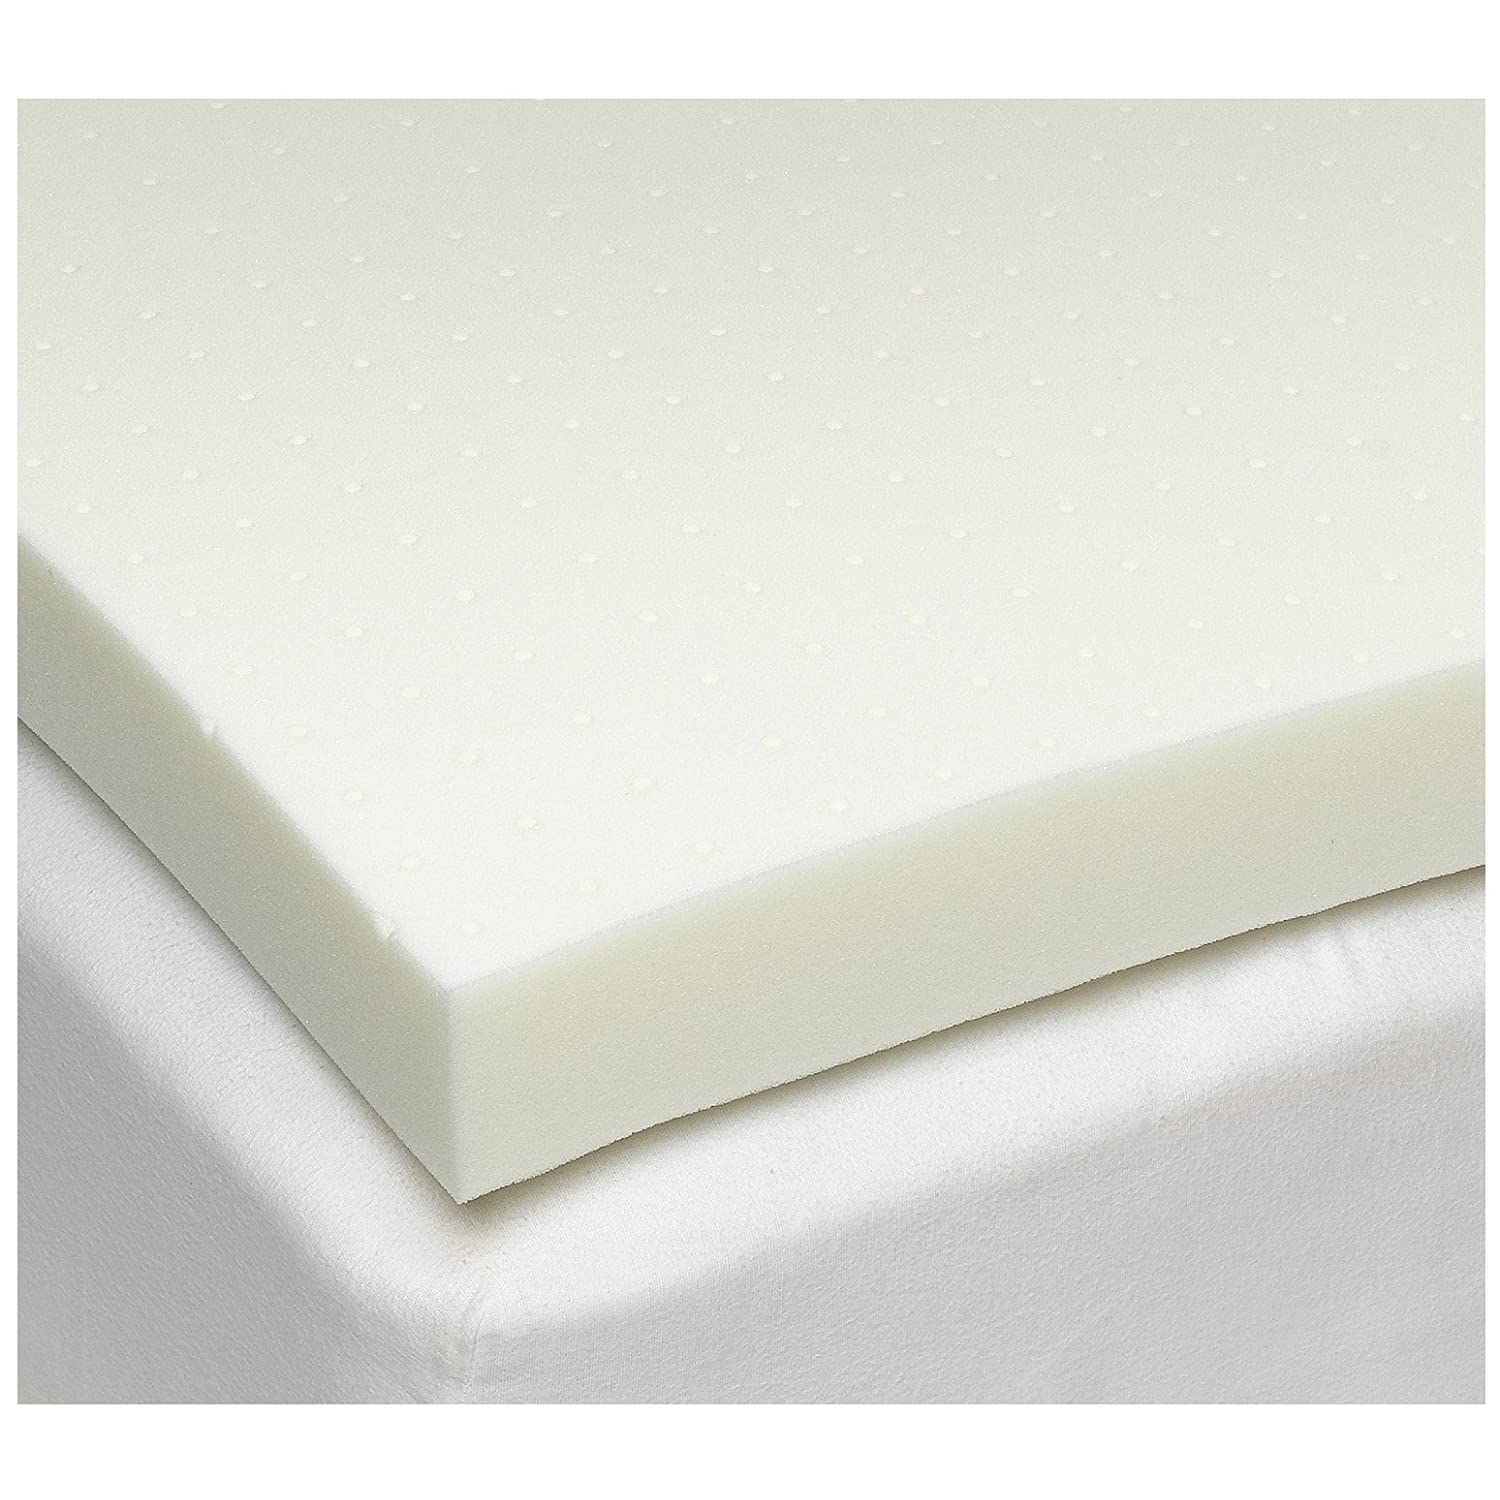 Polyurethane Foam Mattress : Urethane foam mattress reviews sealy